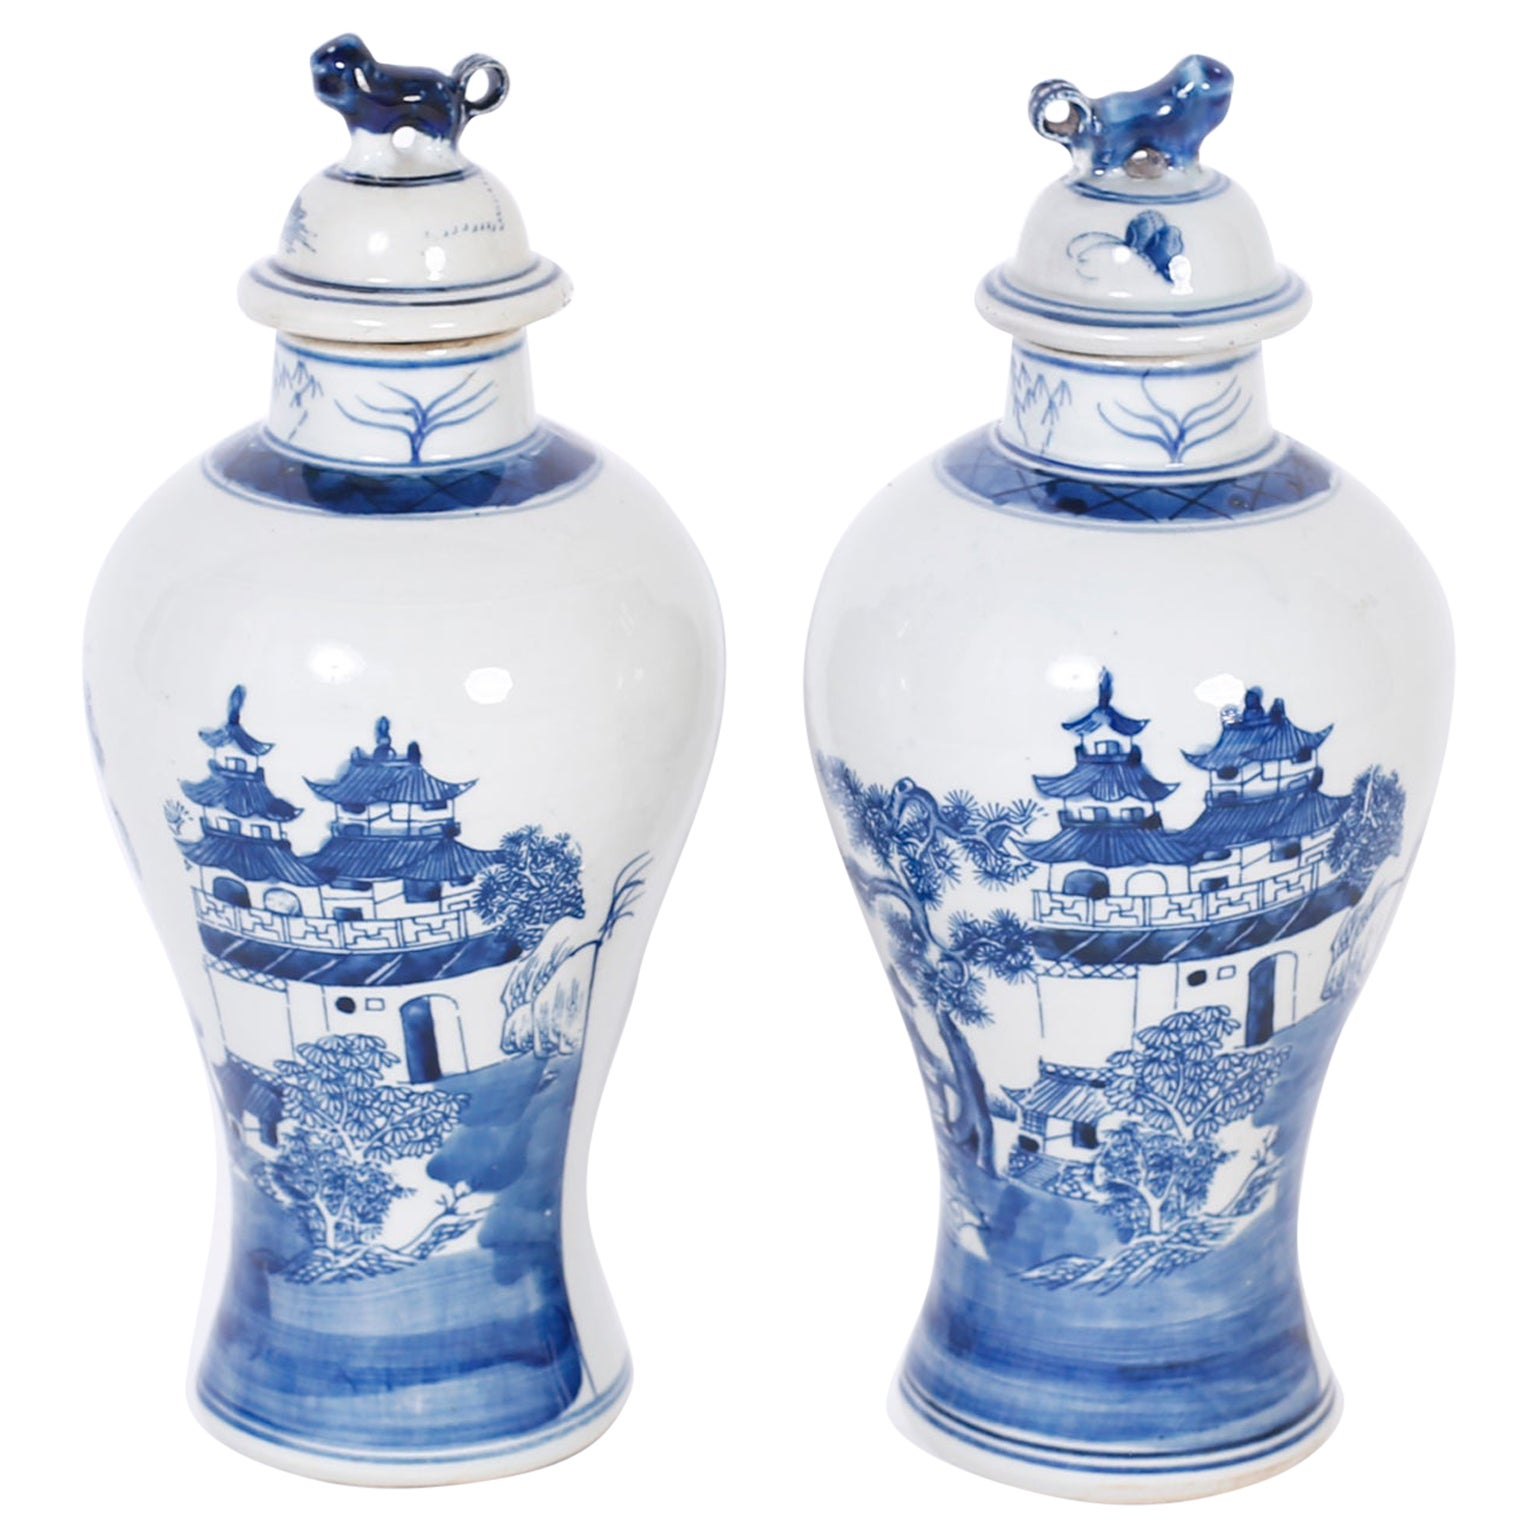 Pair of Blue and White Porcelain Lidded Jars